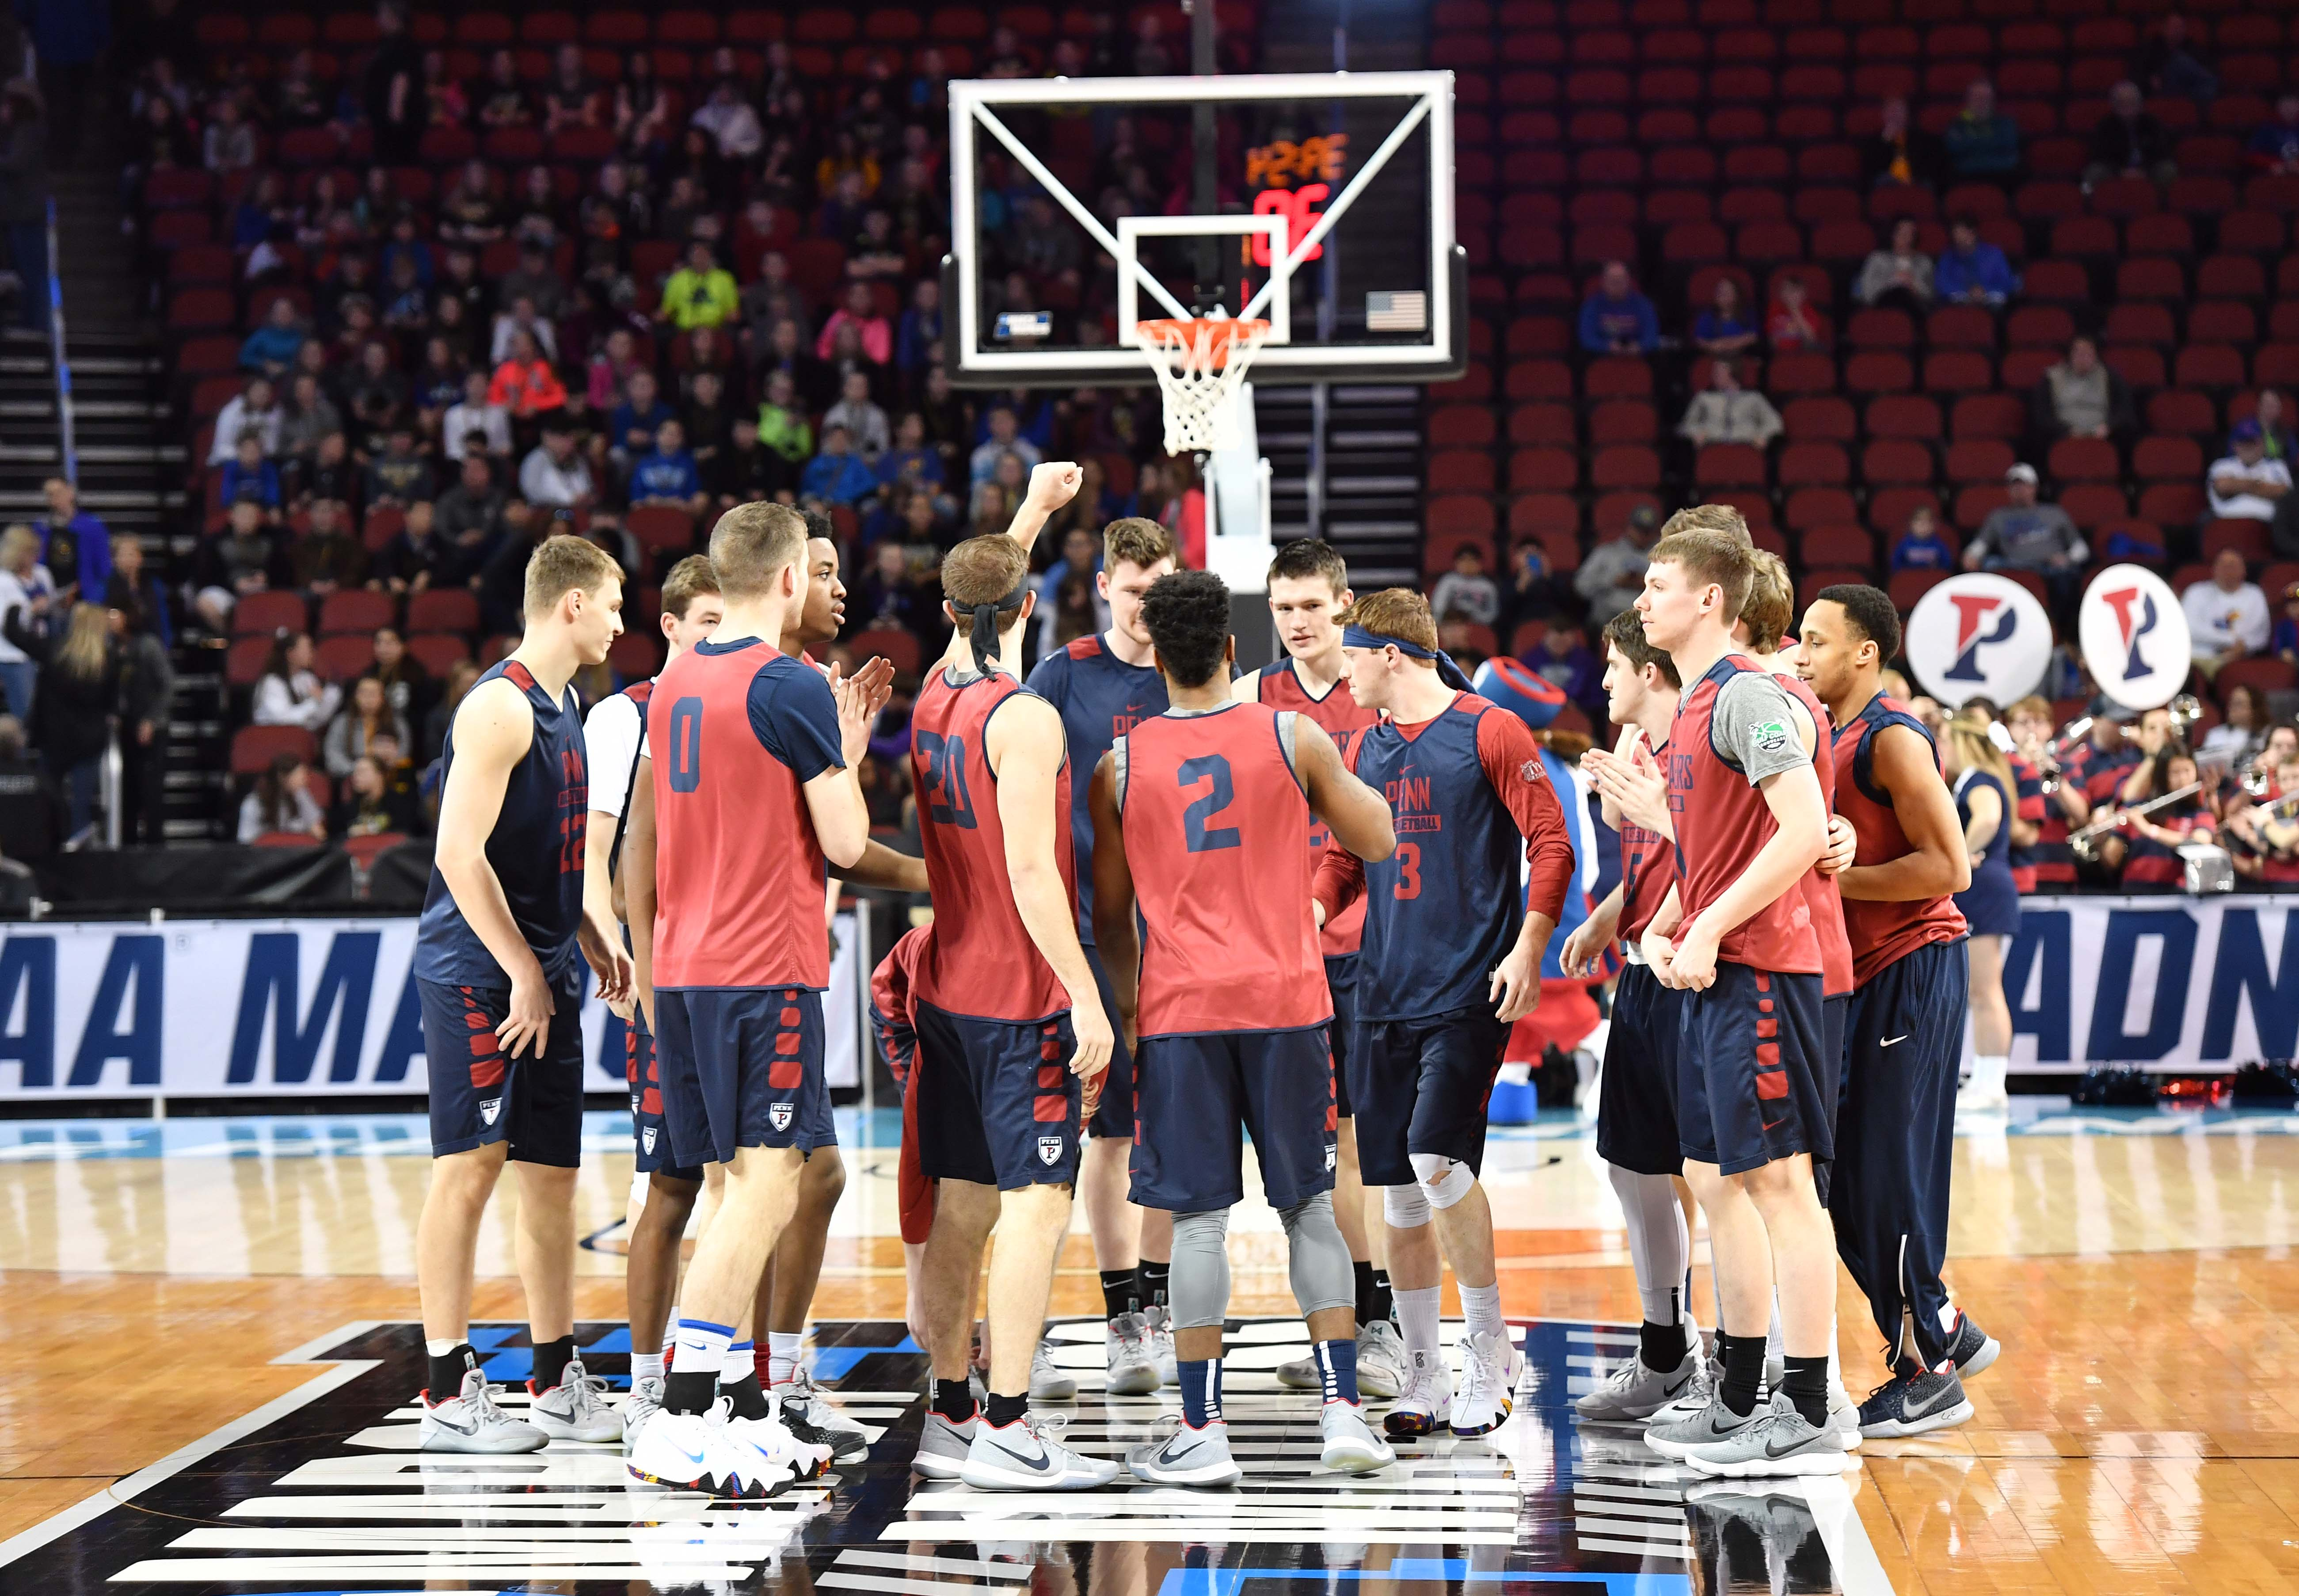 These are the Pennsylvania Quakers. They are your favorite team today.